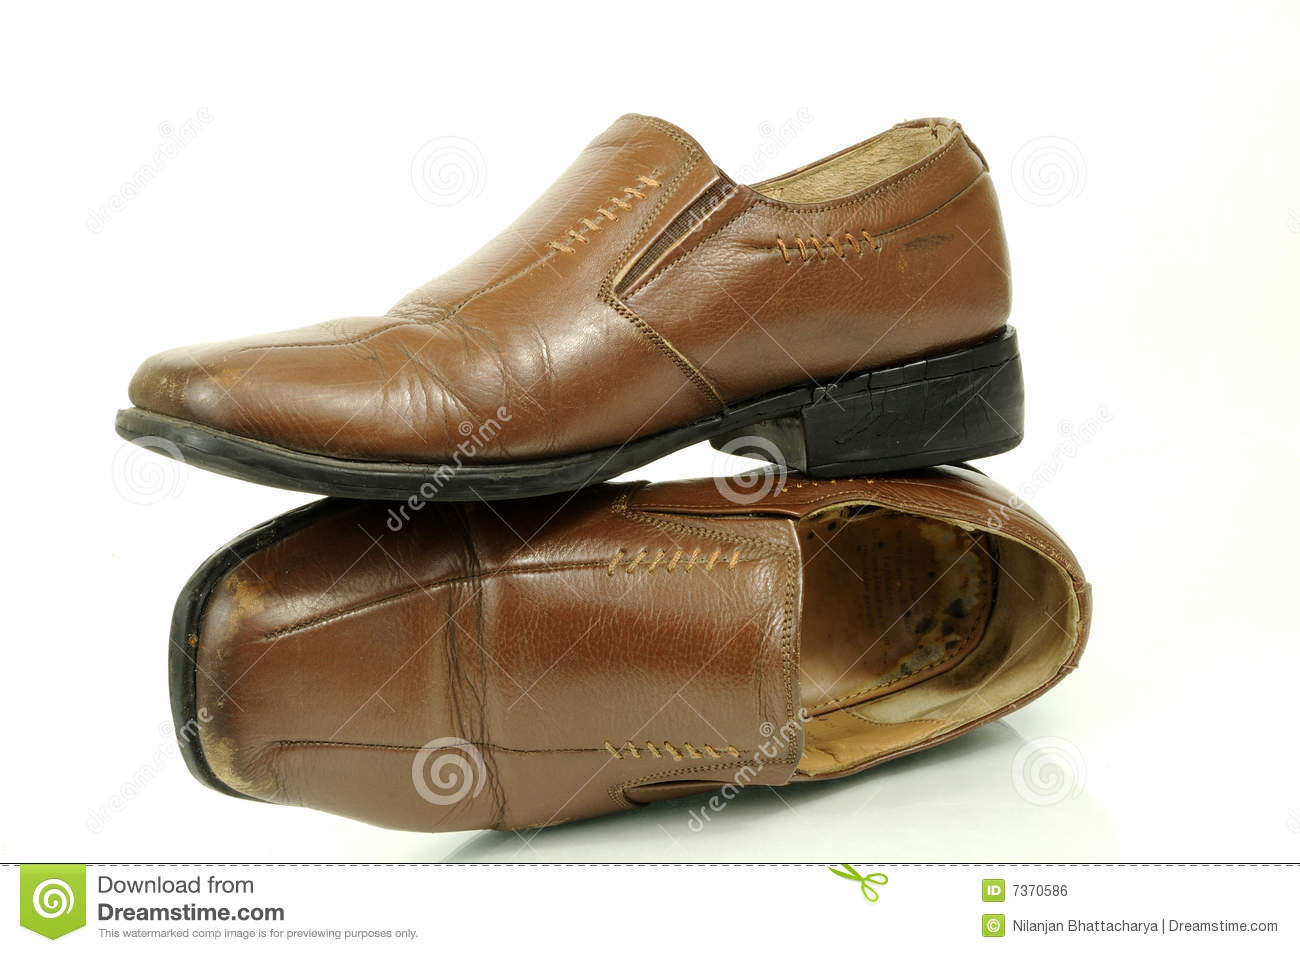 Fashionable Men's Shoes Royalty Free Stock Image - Image: 7370586